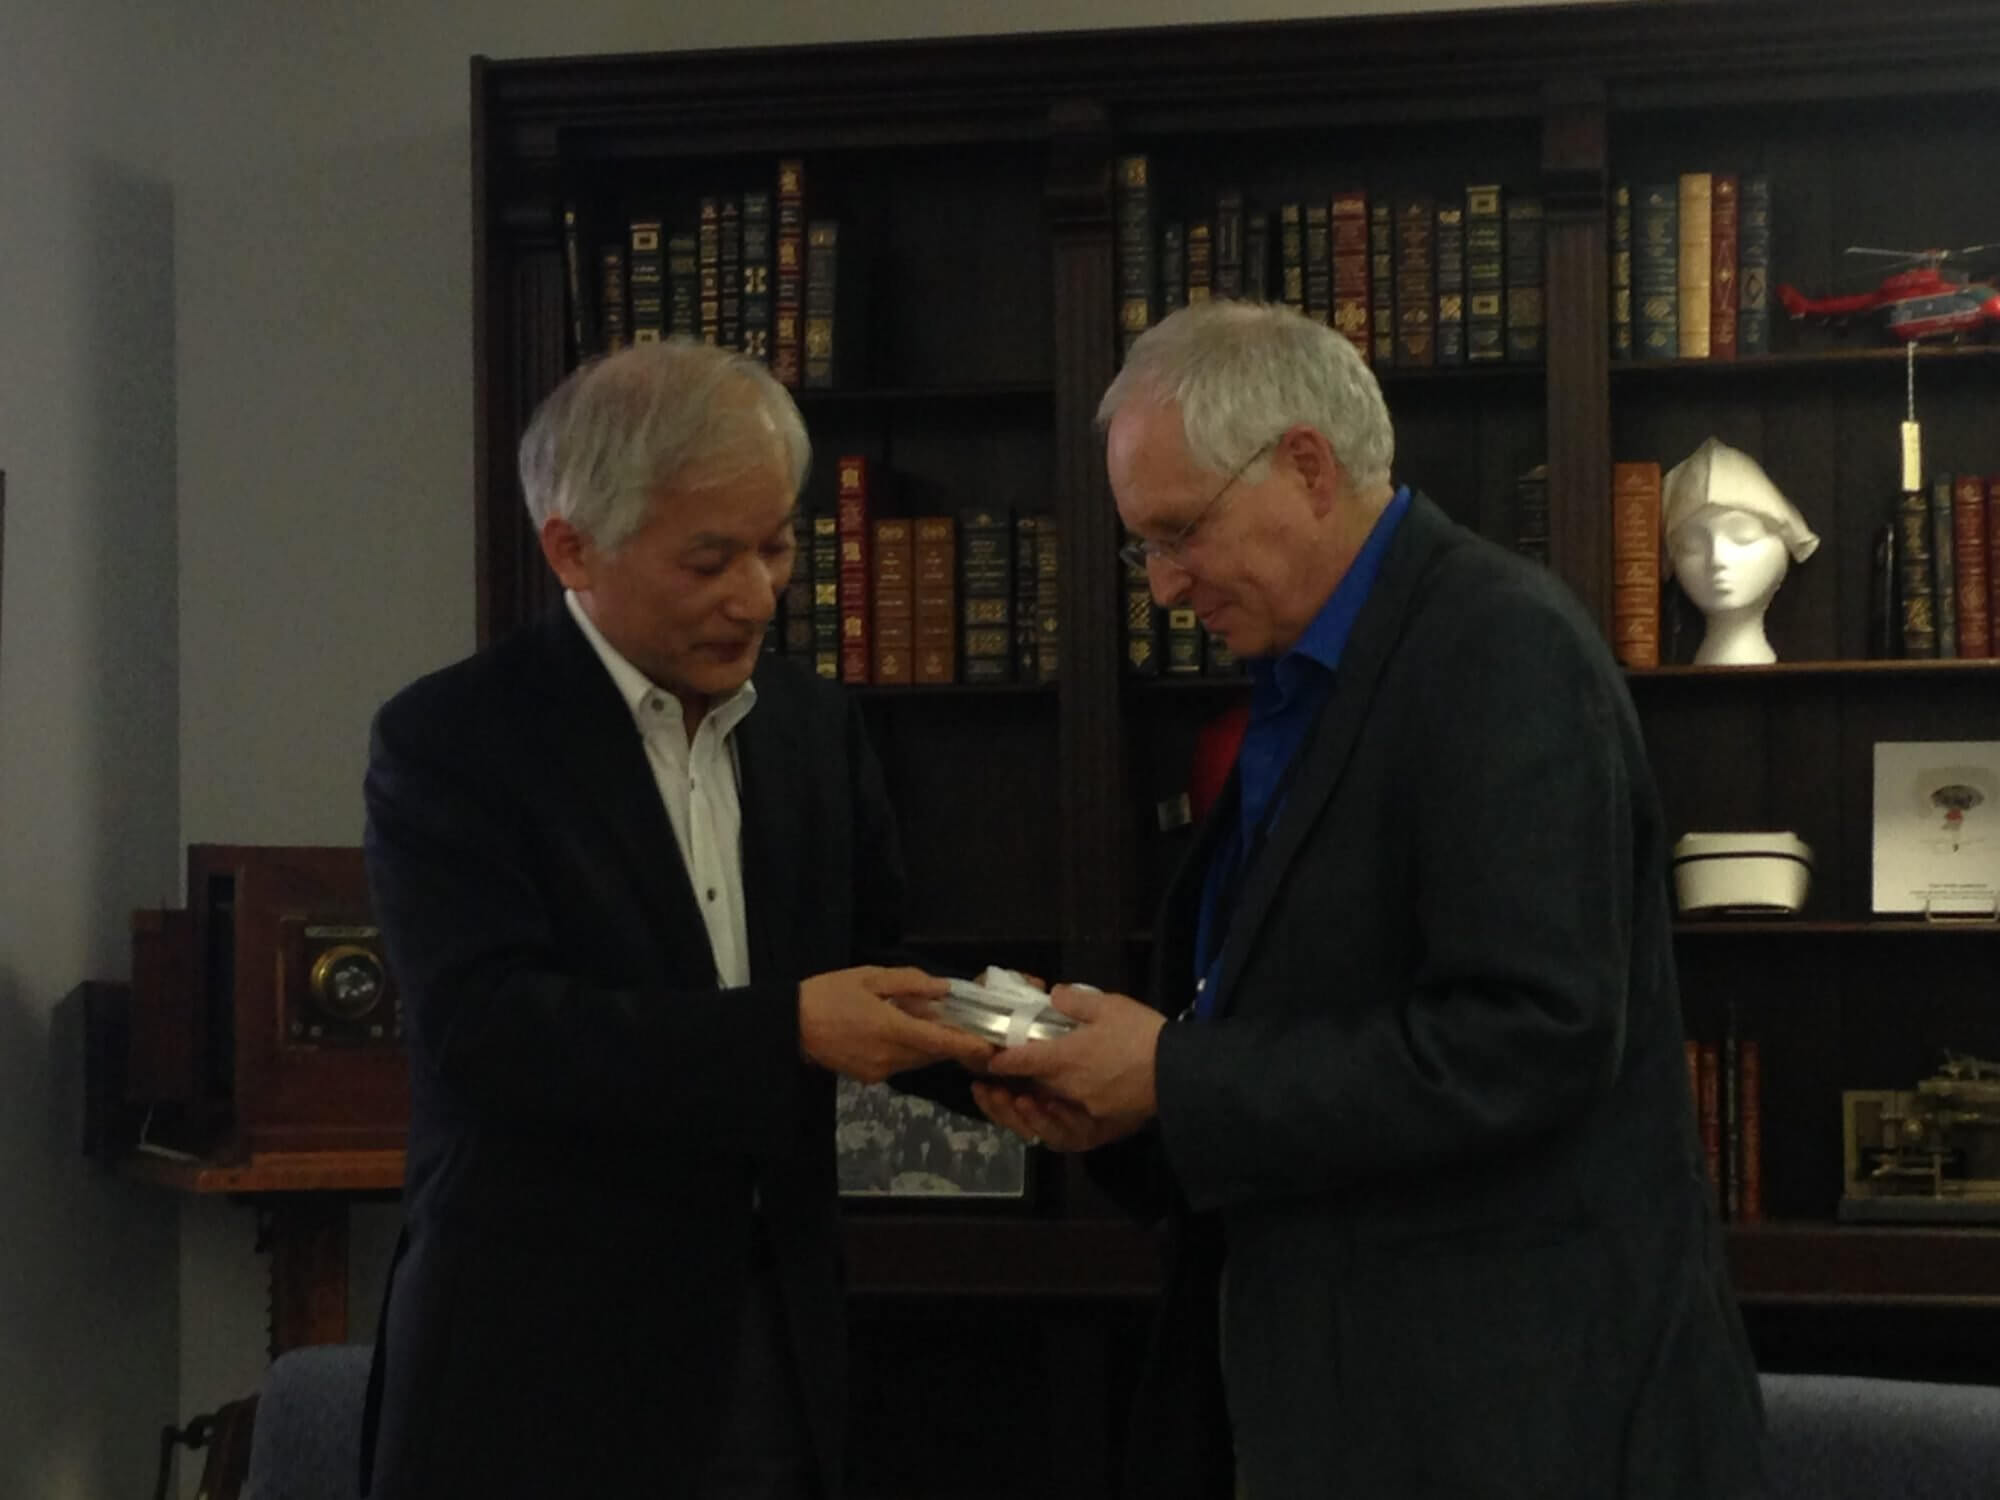 Masahito Ando, Ph.D., a professor at Gakushuin University in Tokyo, Japan, presents Philip Montgomery, MLIS, CA, head of the TMC Library's McGovern Historical Center, with a hard drive of digitized documents from the Atomic Bomb Casualty Commission.